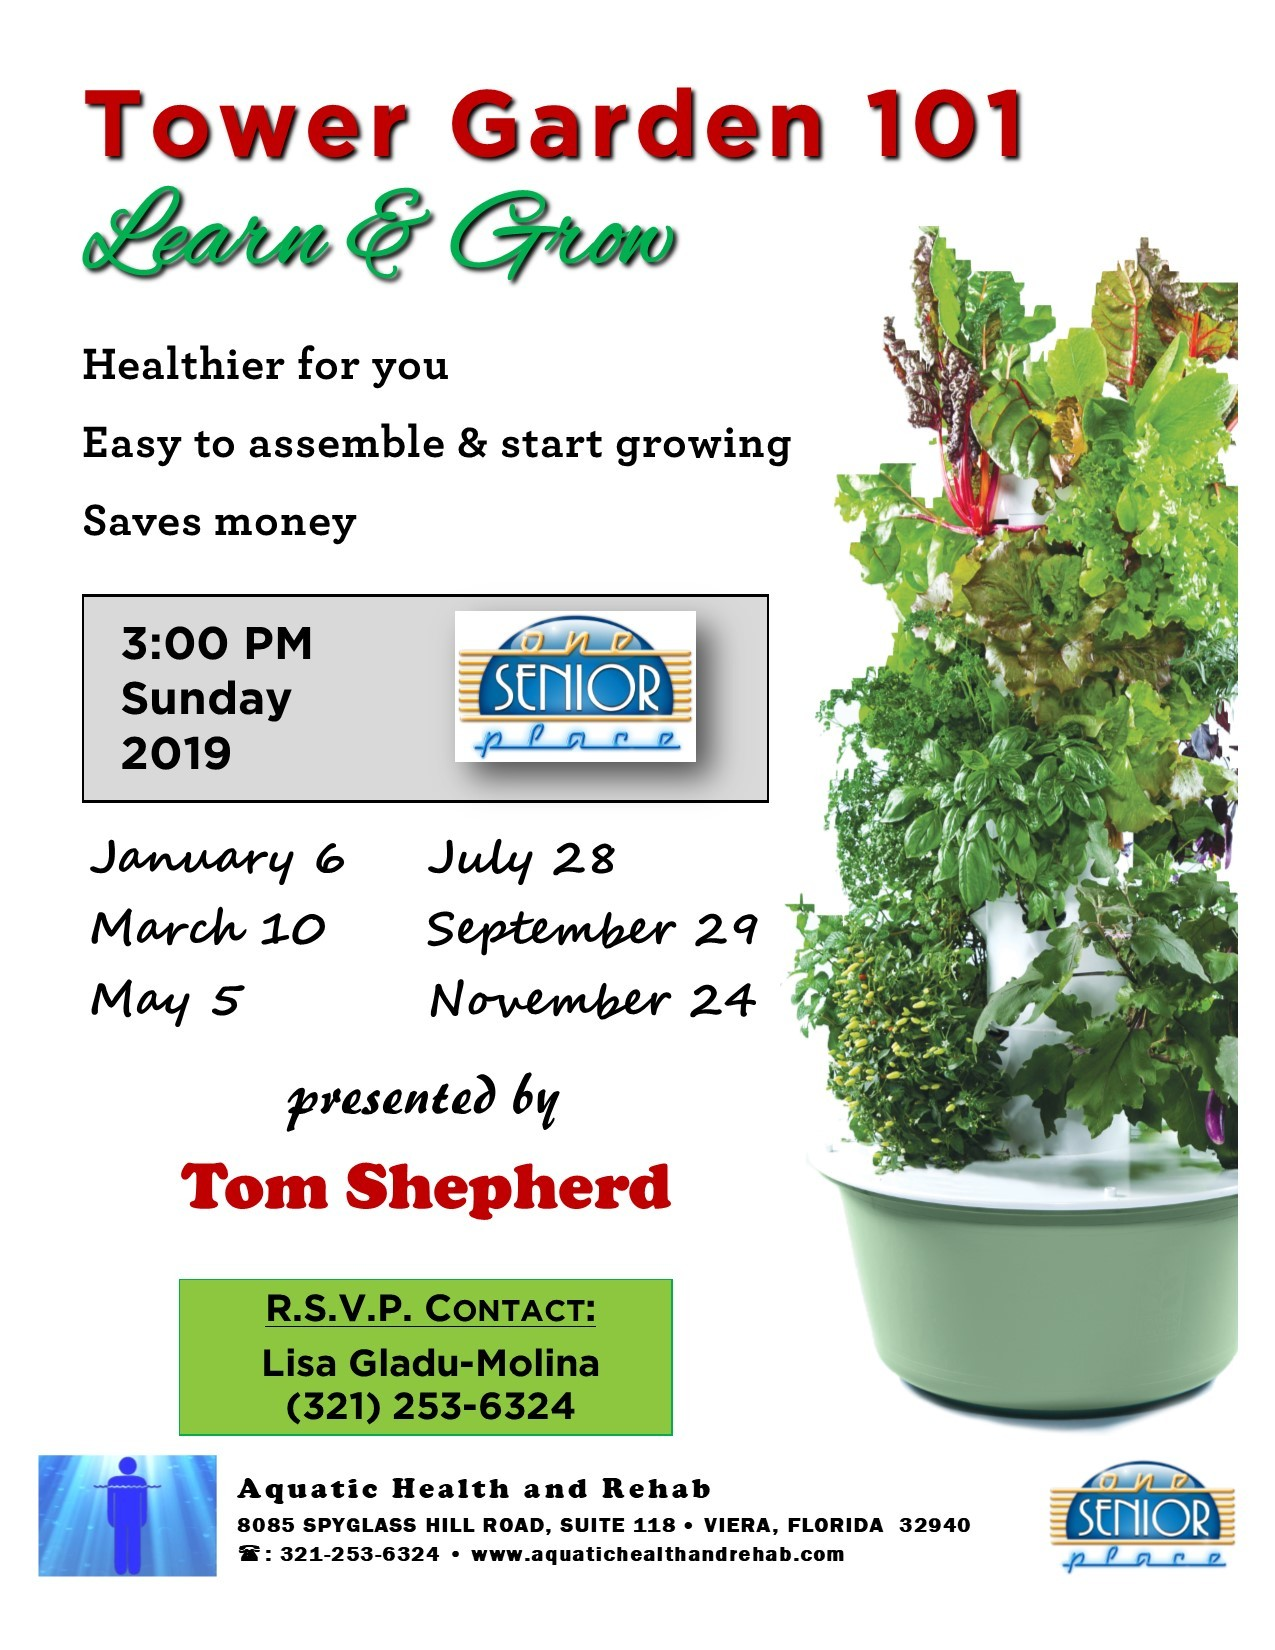 Tower Garden 101, Learn and Grow, presented by Aquatic Health and Rehab